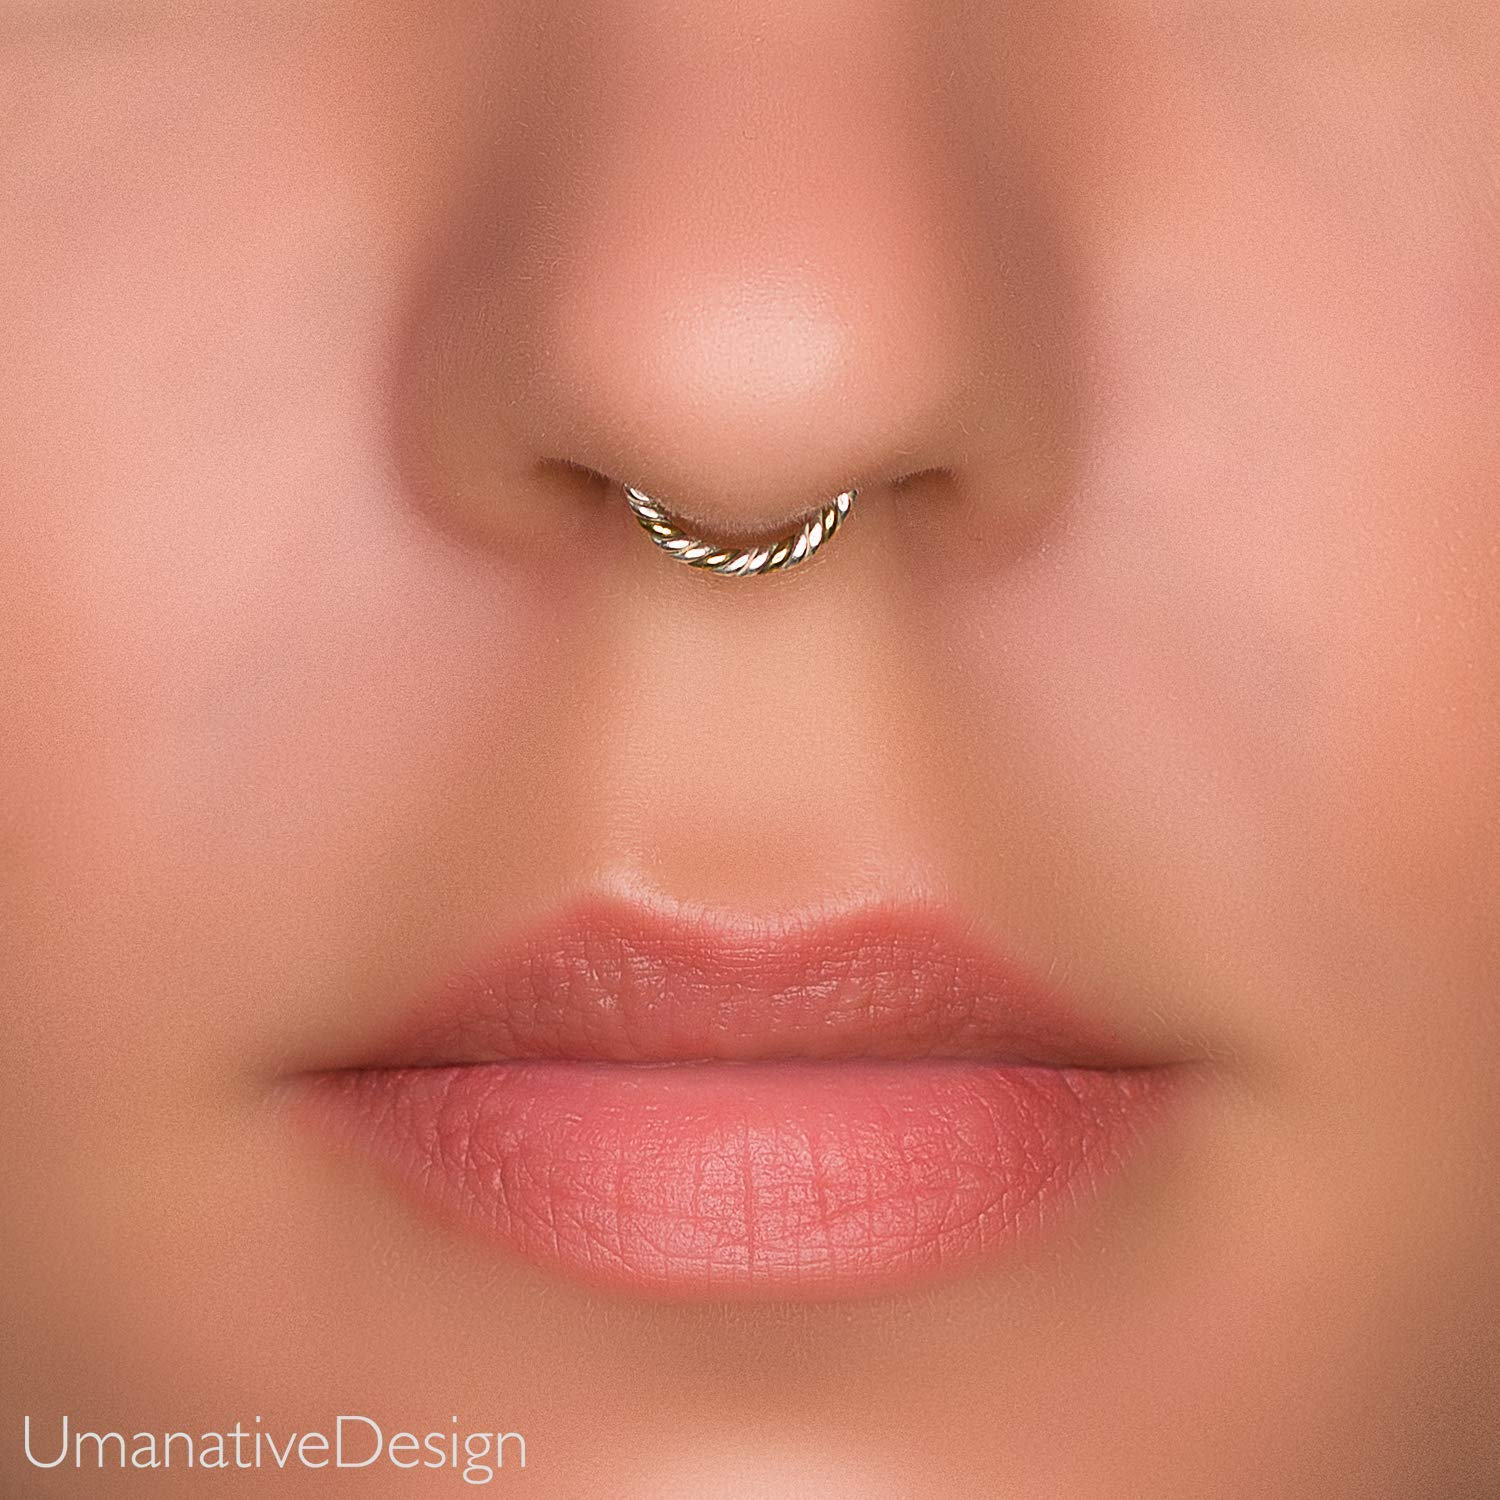 Details about  /Dainty Faux Nose Rings Septum Rings Hoop Nostril Piercing Clip Jewelry CO